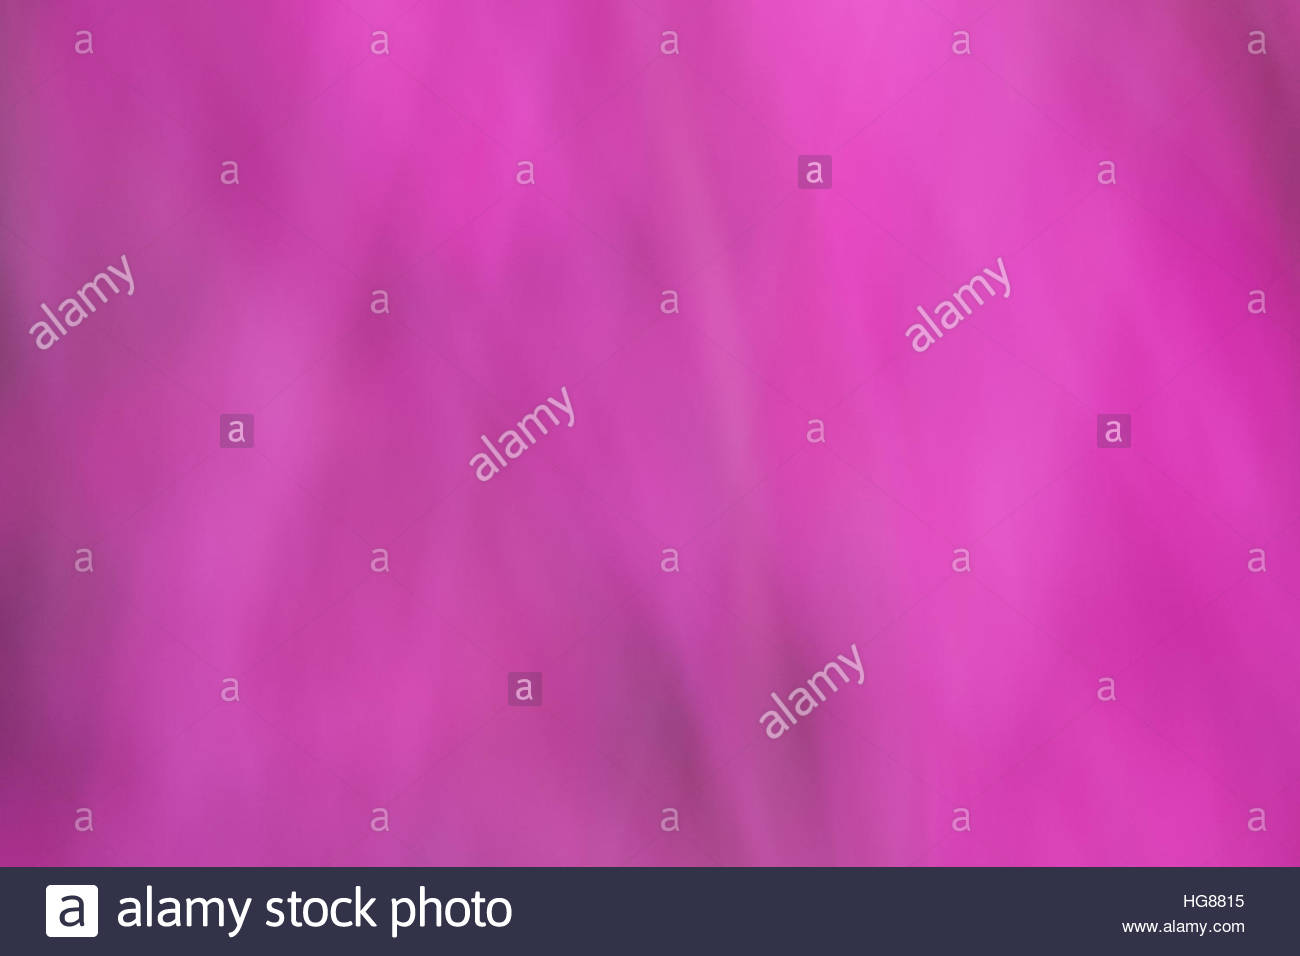 Purple swirls and wiggles of color and action in an abstract photo Stock Photo